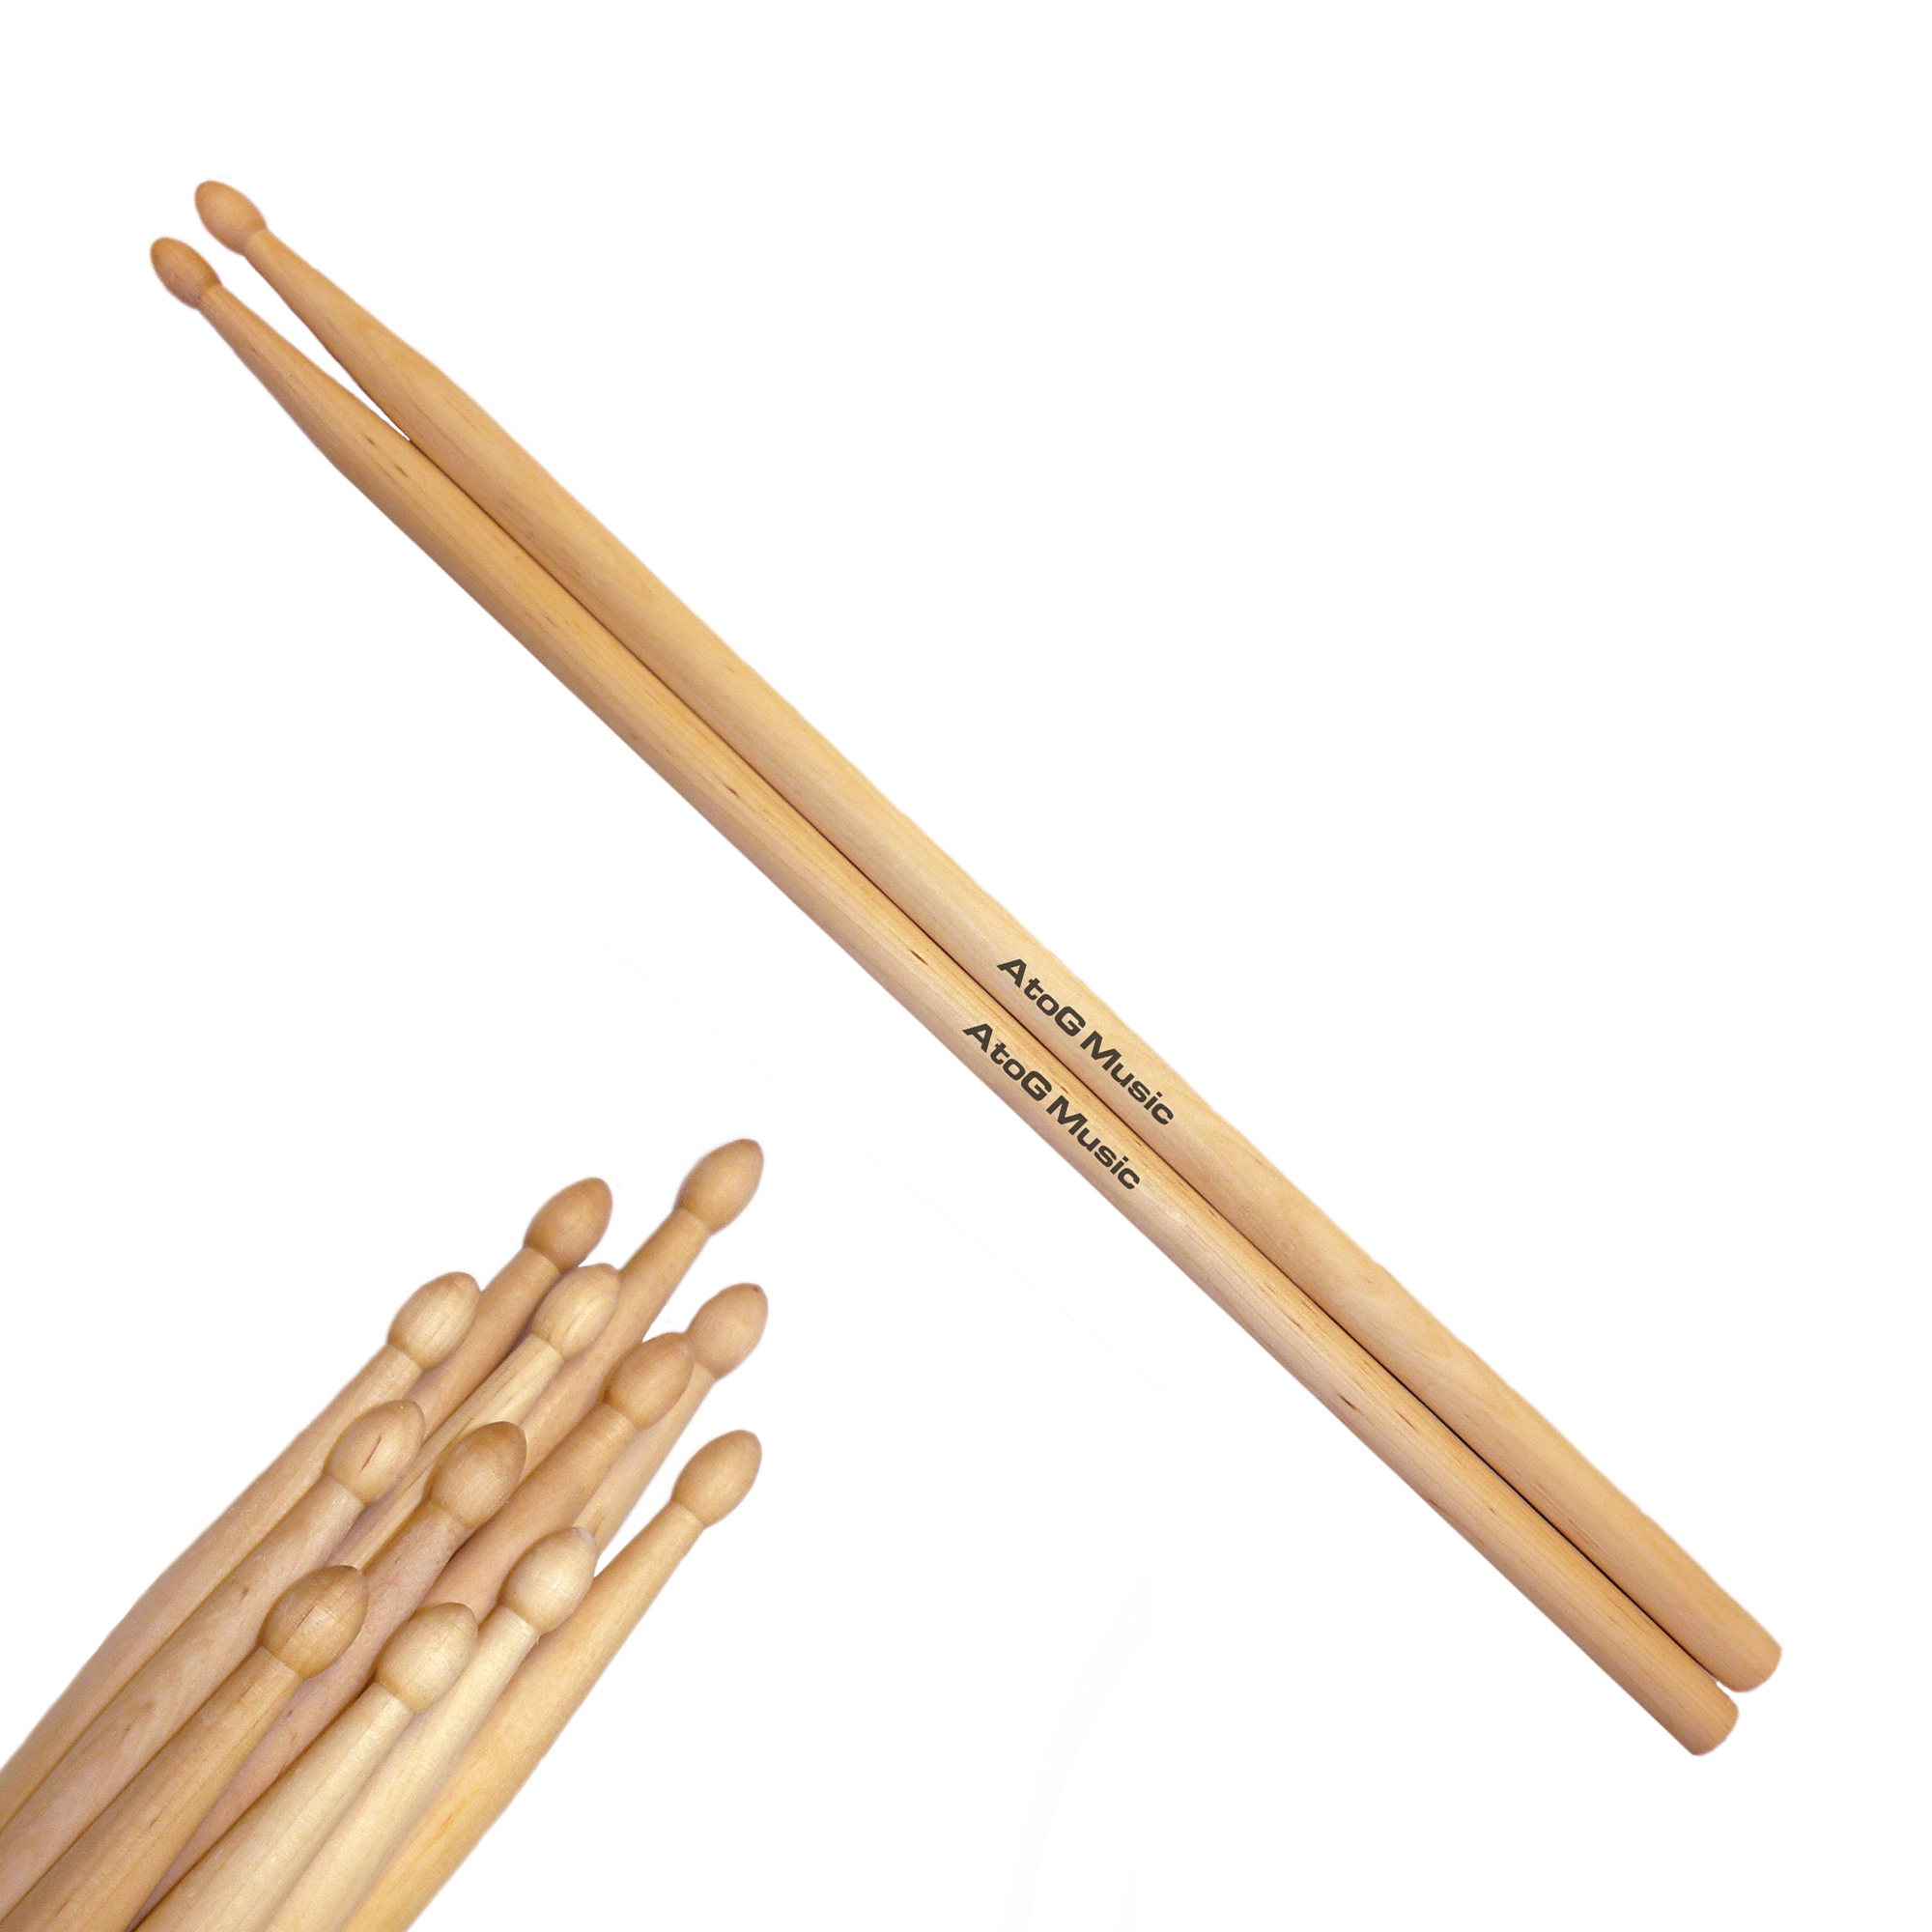 5A AtoG sticks